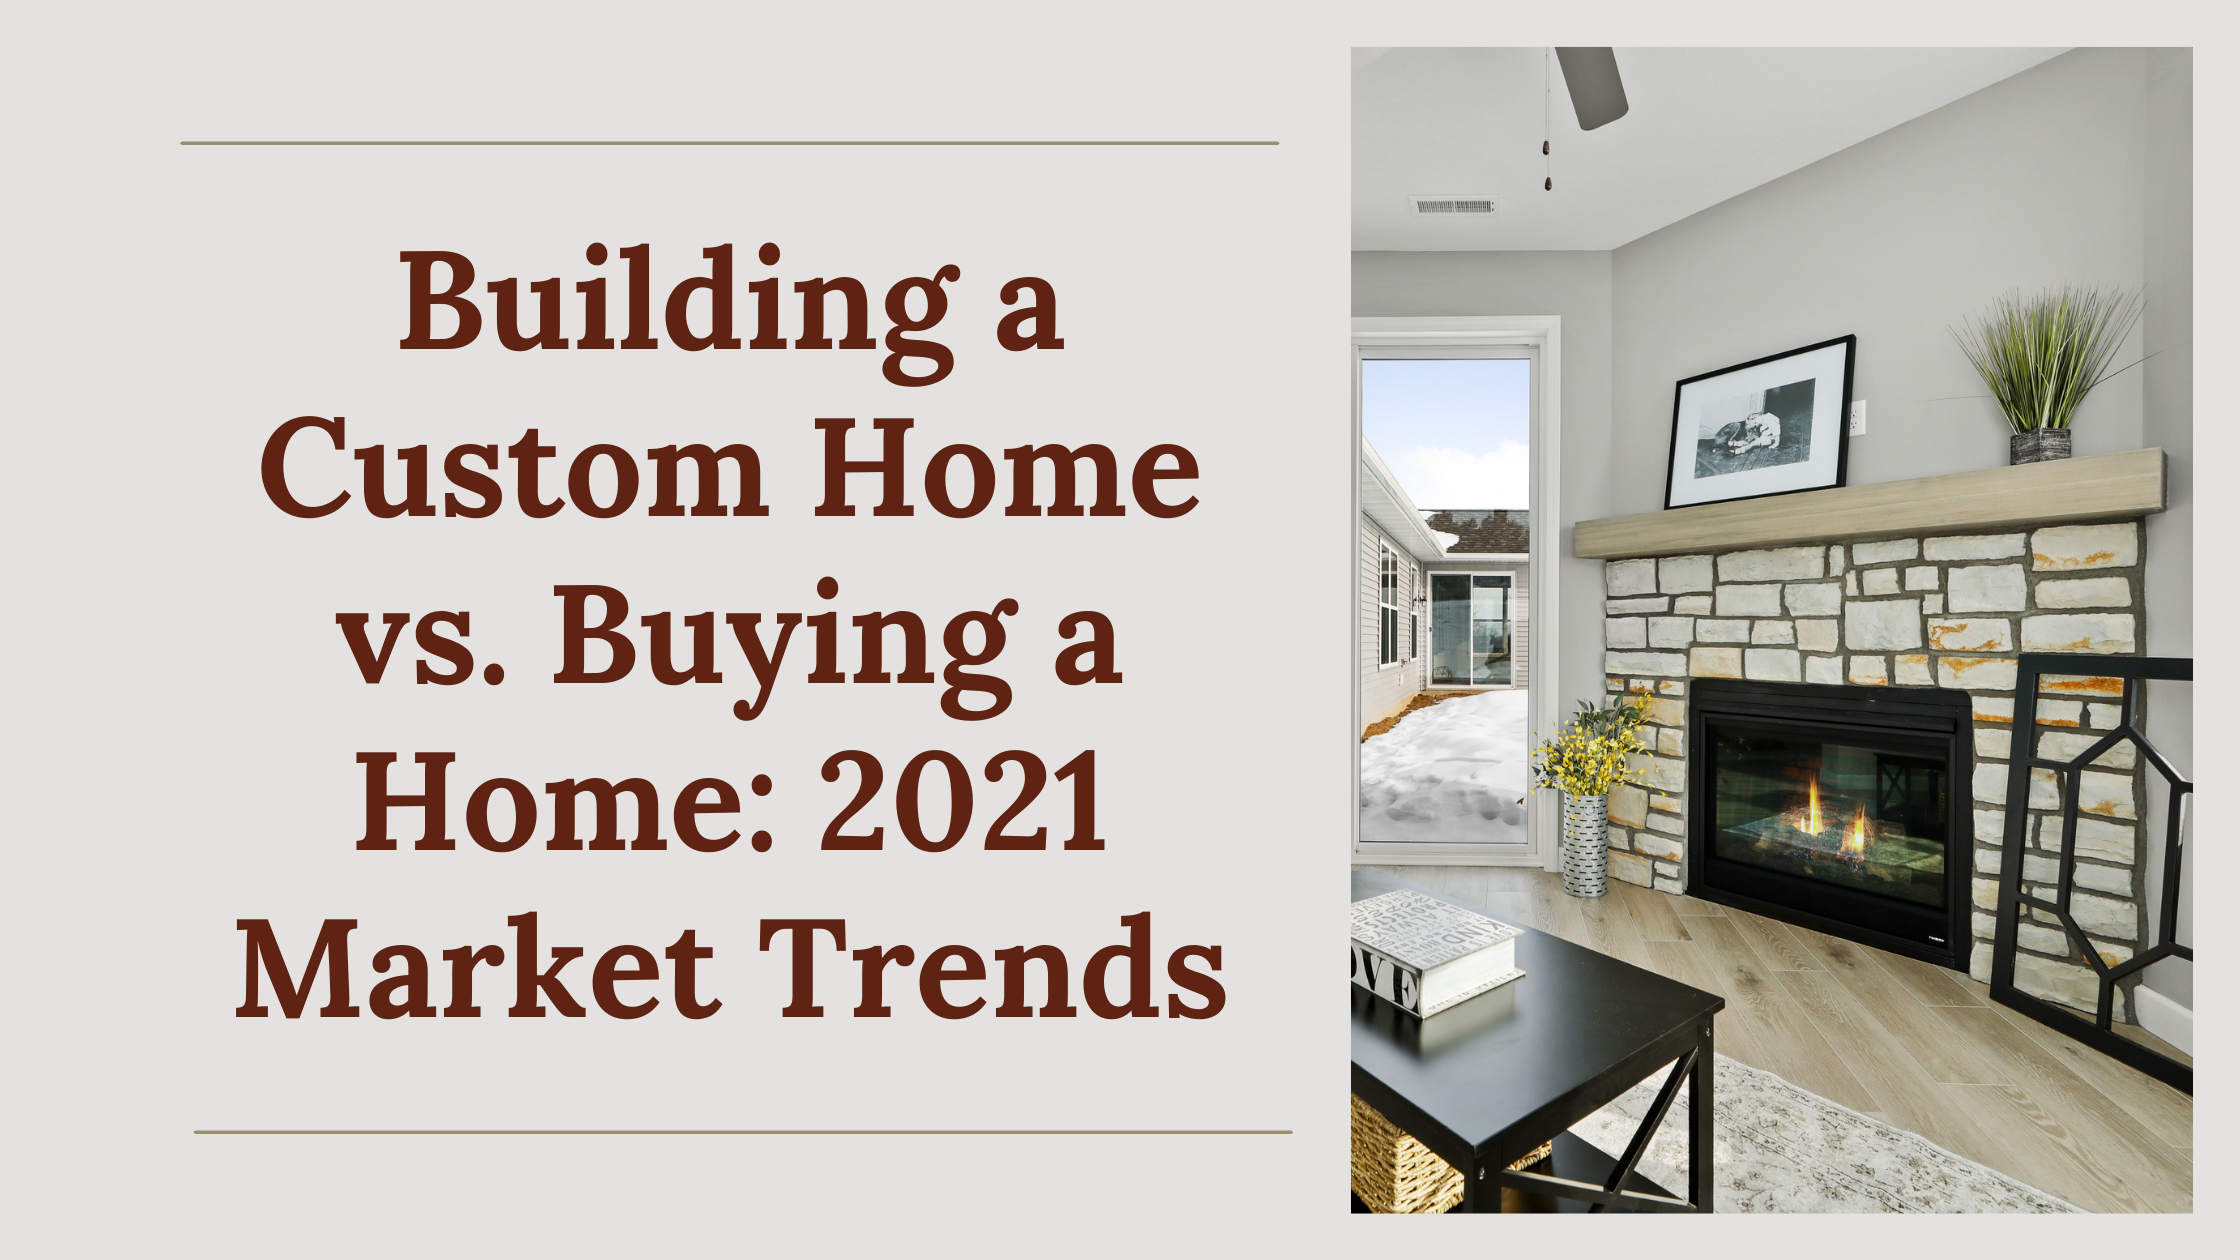 Building a Custom Home versus Buying a Home: 2021 Market Trends in Wisconsin